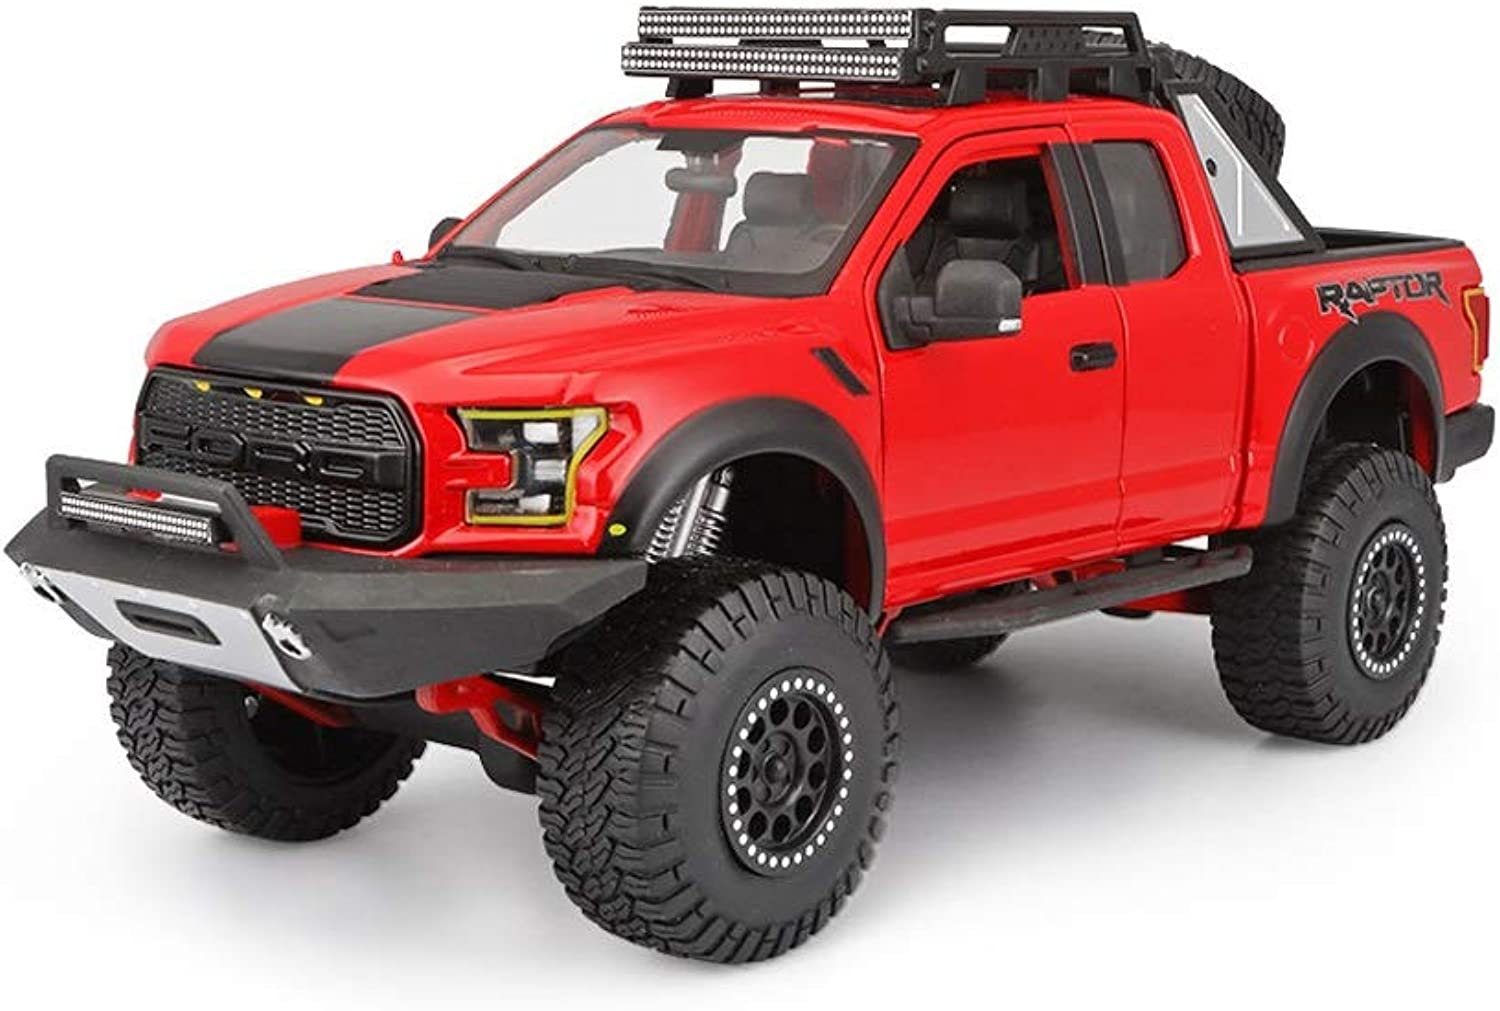 LIUFSAlloy Car Original 1 24 Ford Raptor F150 Pickup Truck Model Simulation Alloy Car Model Metal Car Model ( color   RED )